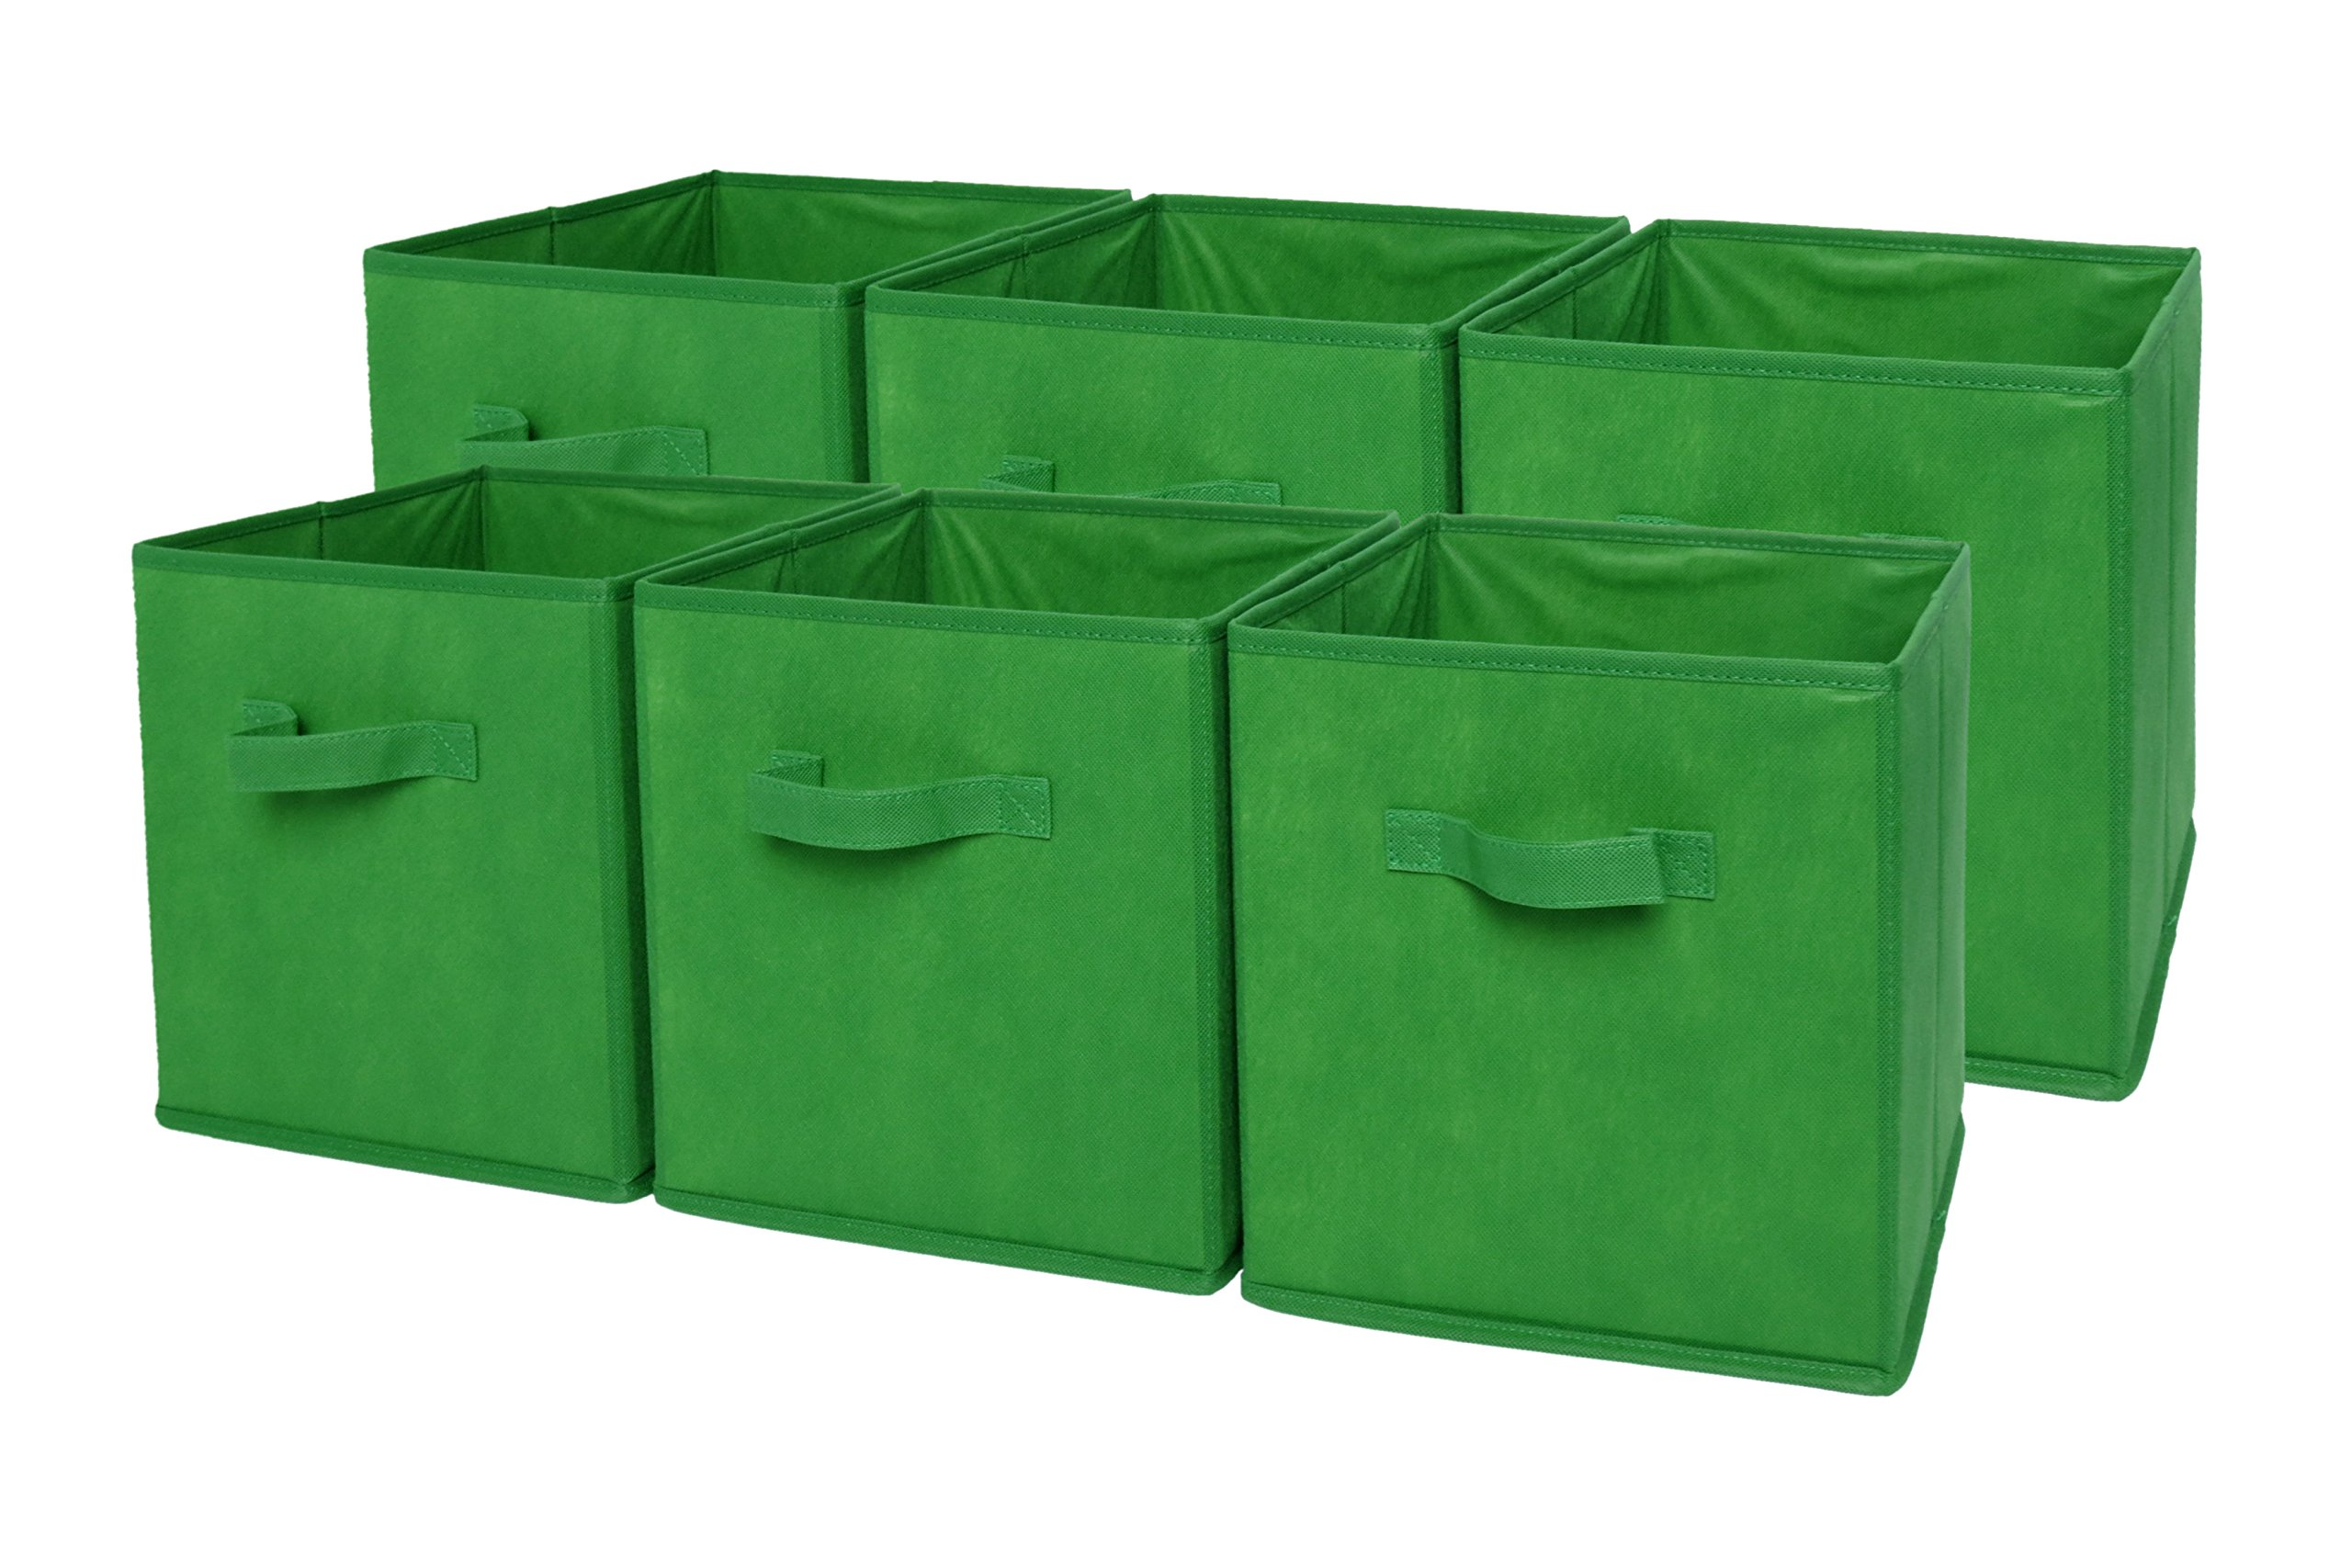 Sodynee® Foldable Cloth Storage Cube Basket Bins Organizer Containers Drawers, 6 Pack, Green